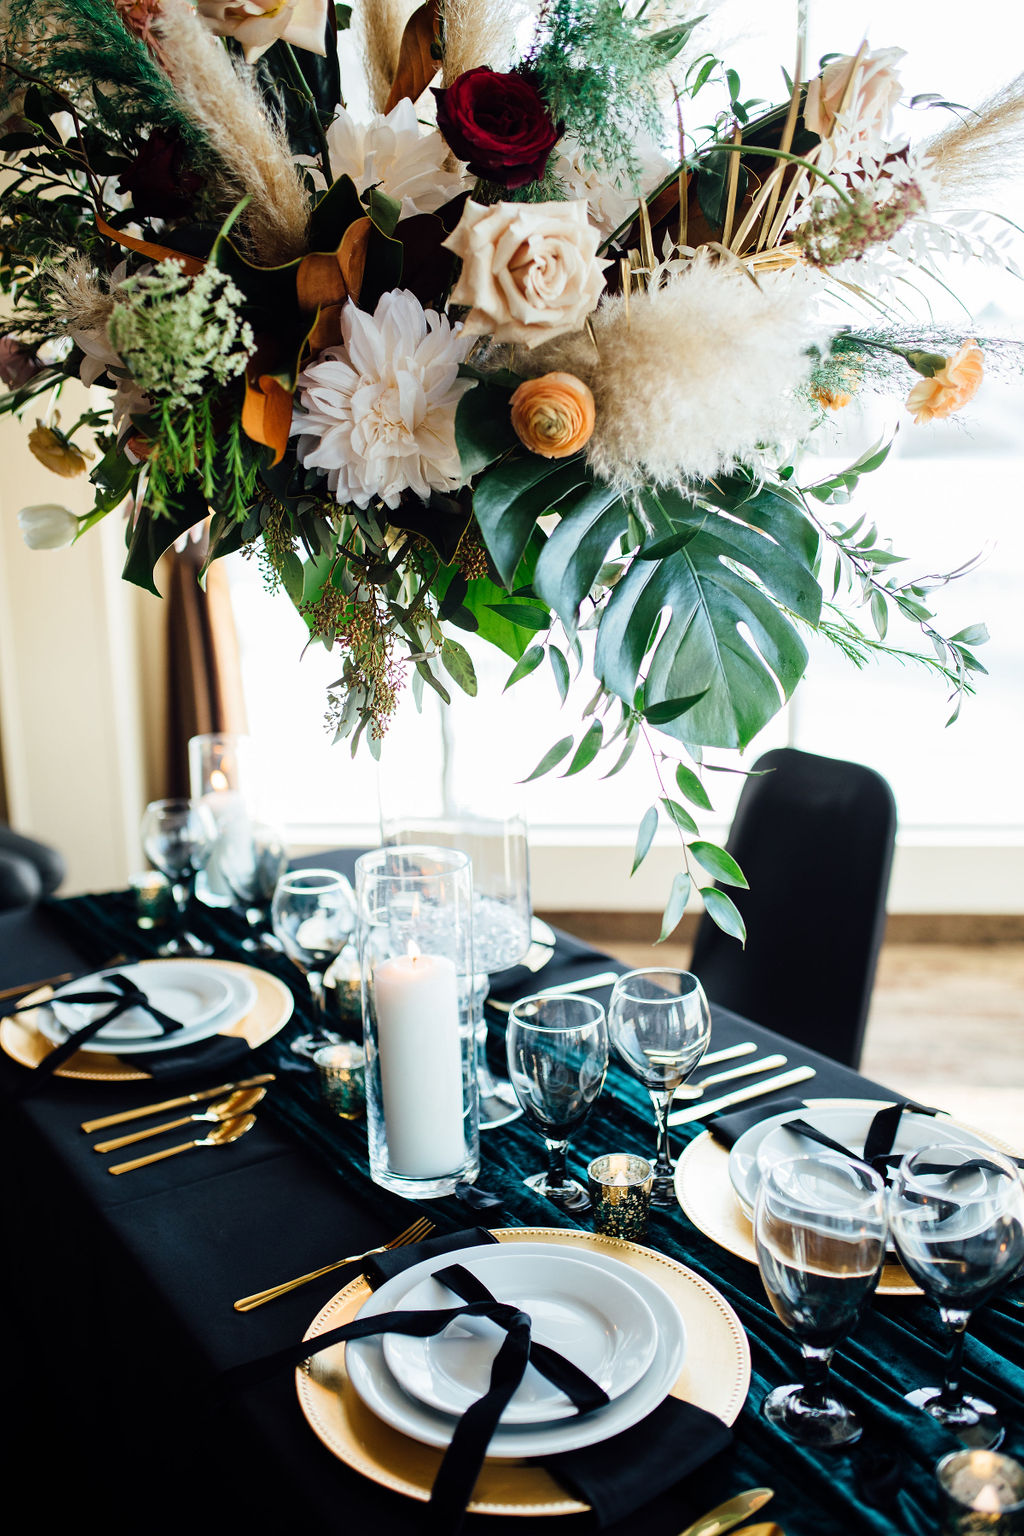 Black, Gold and Emerald Wedding Decor with Towering Floral Center Piece